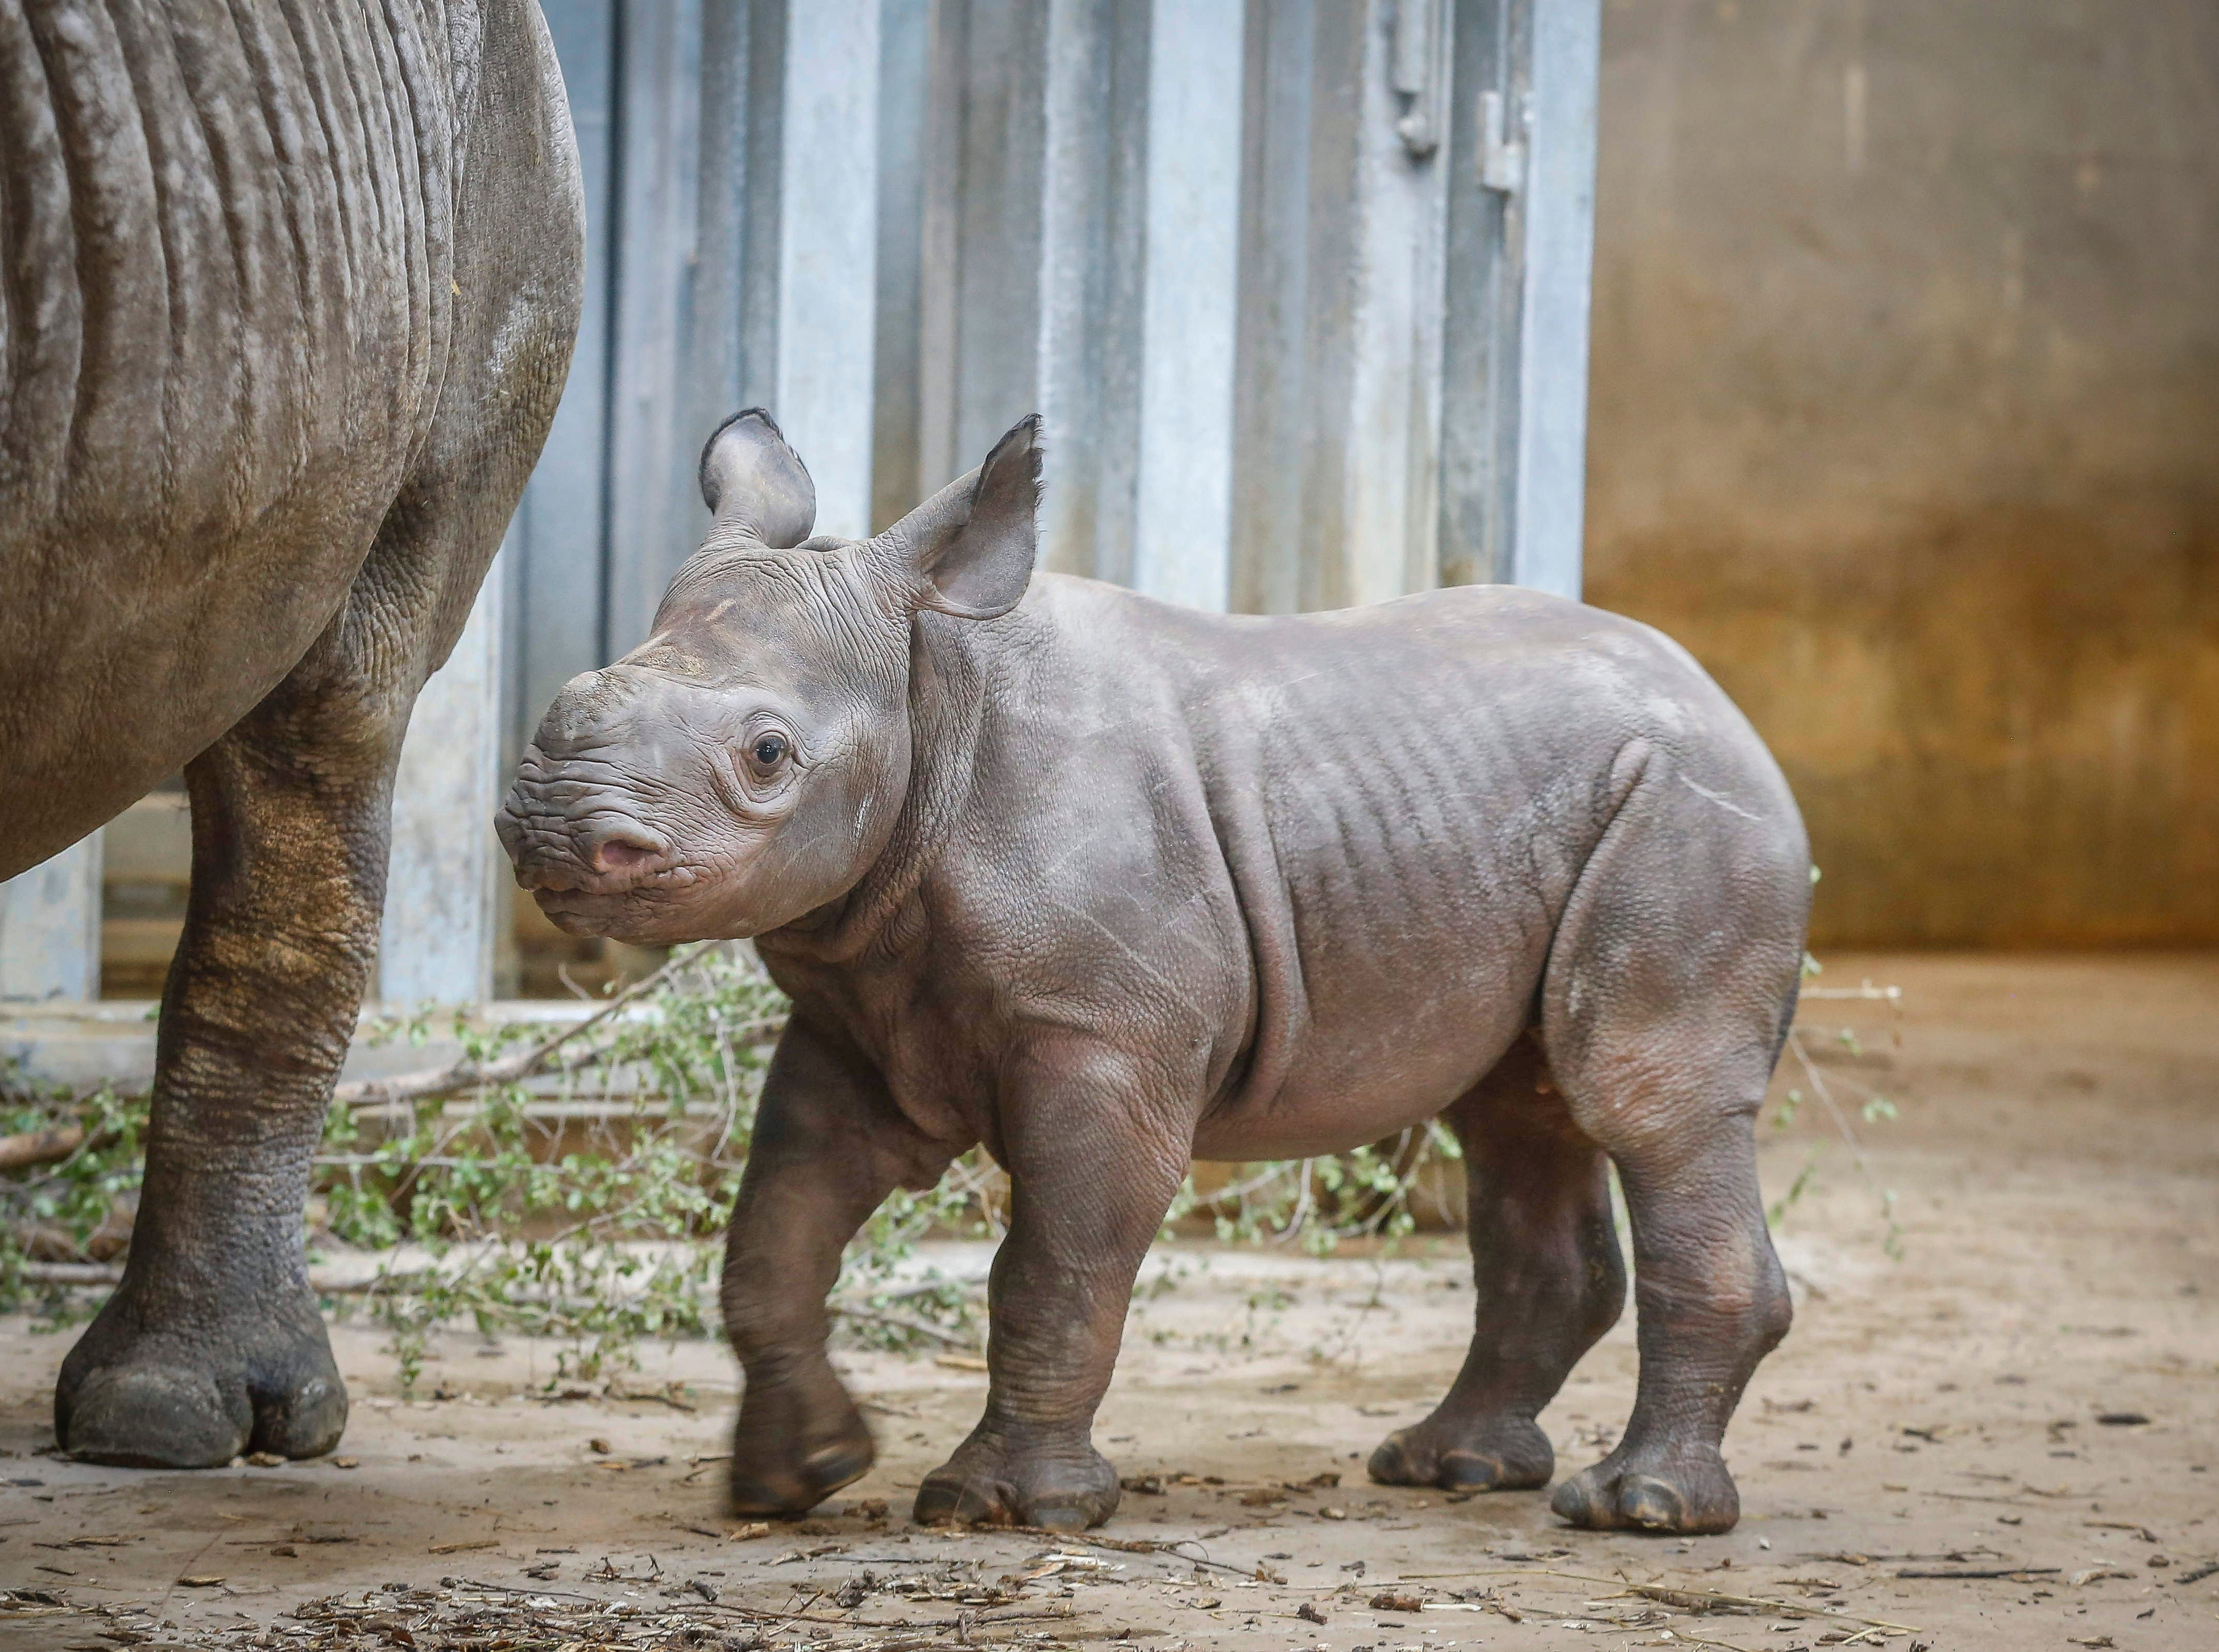 Members of the public got to meet Kamara, the Blank Park Zoo's baby rhinoceros, for the first time on Saturday, May 11, 2019, in Des Moines.